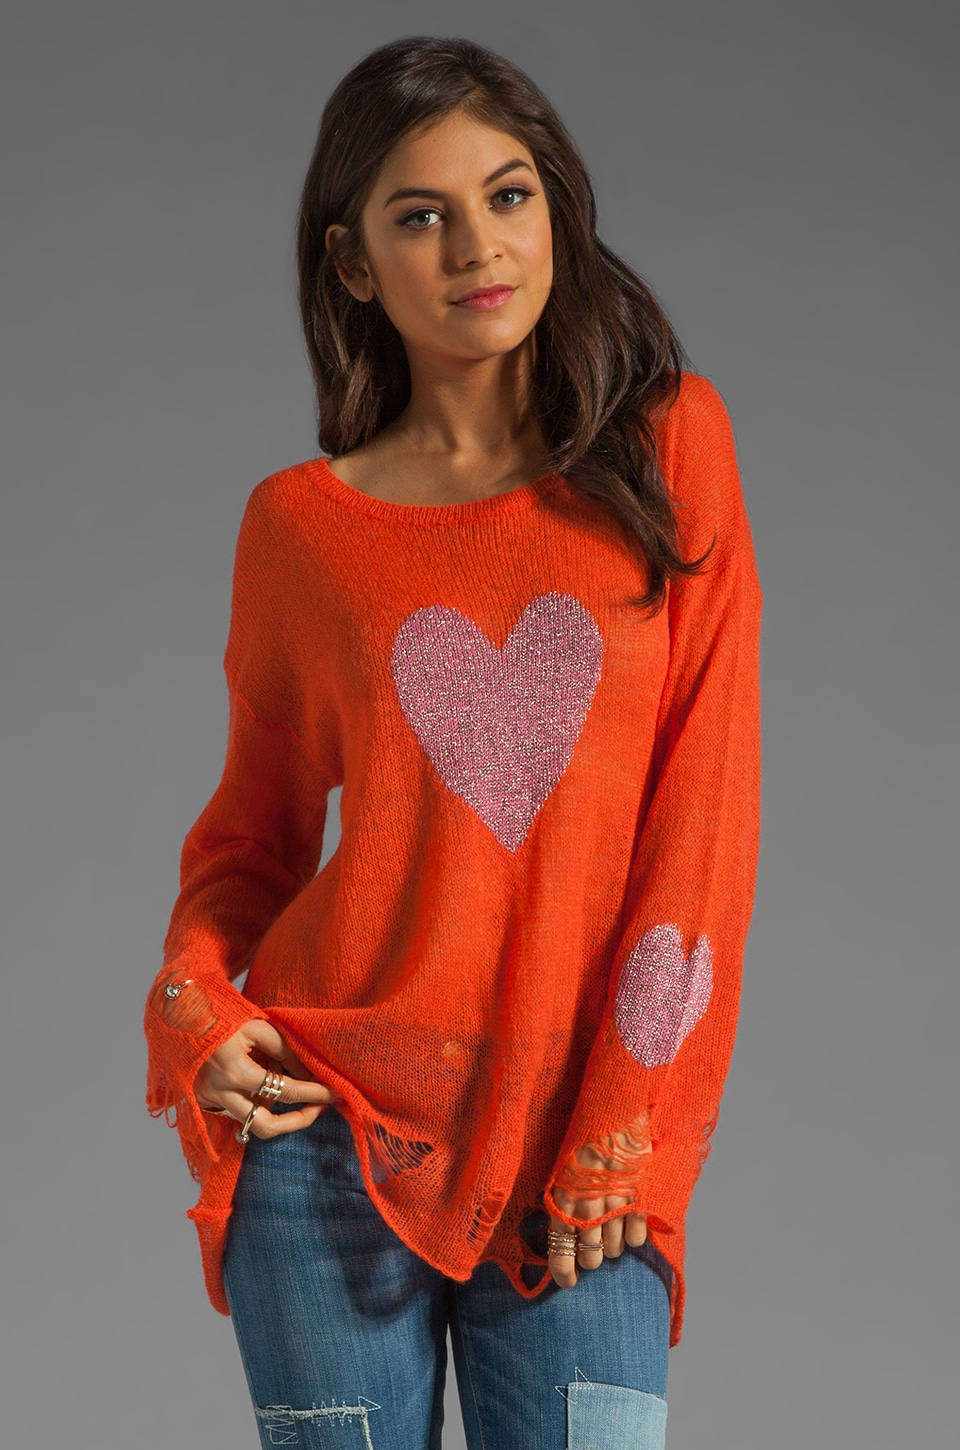 Wildfox Couture White Label Happy Heart Lennon Sweater in Valley Rogue